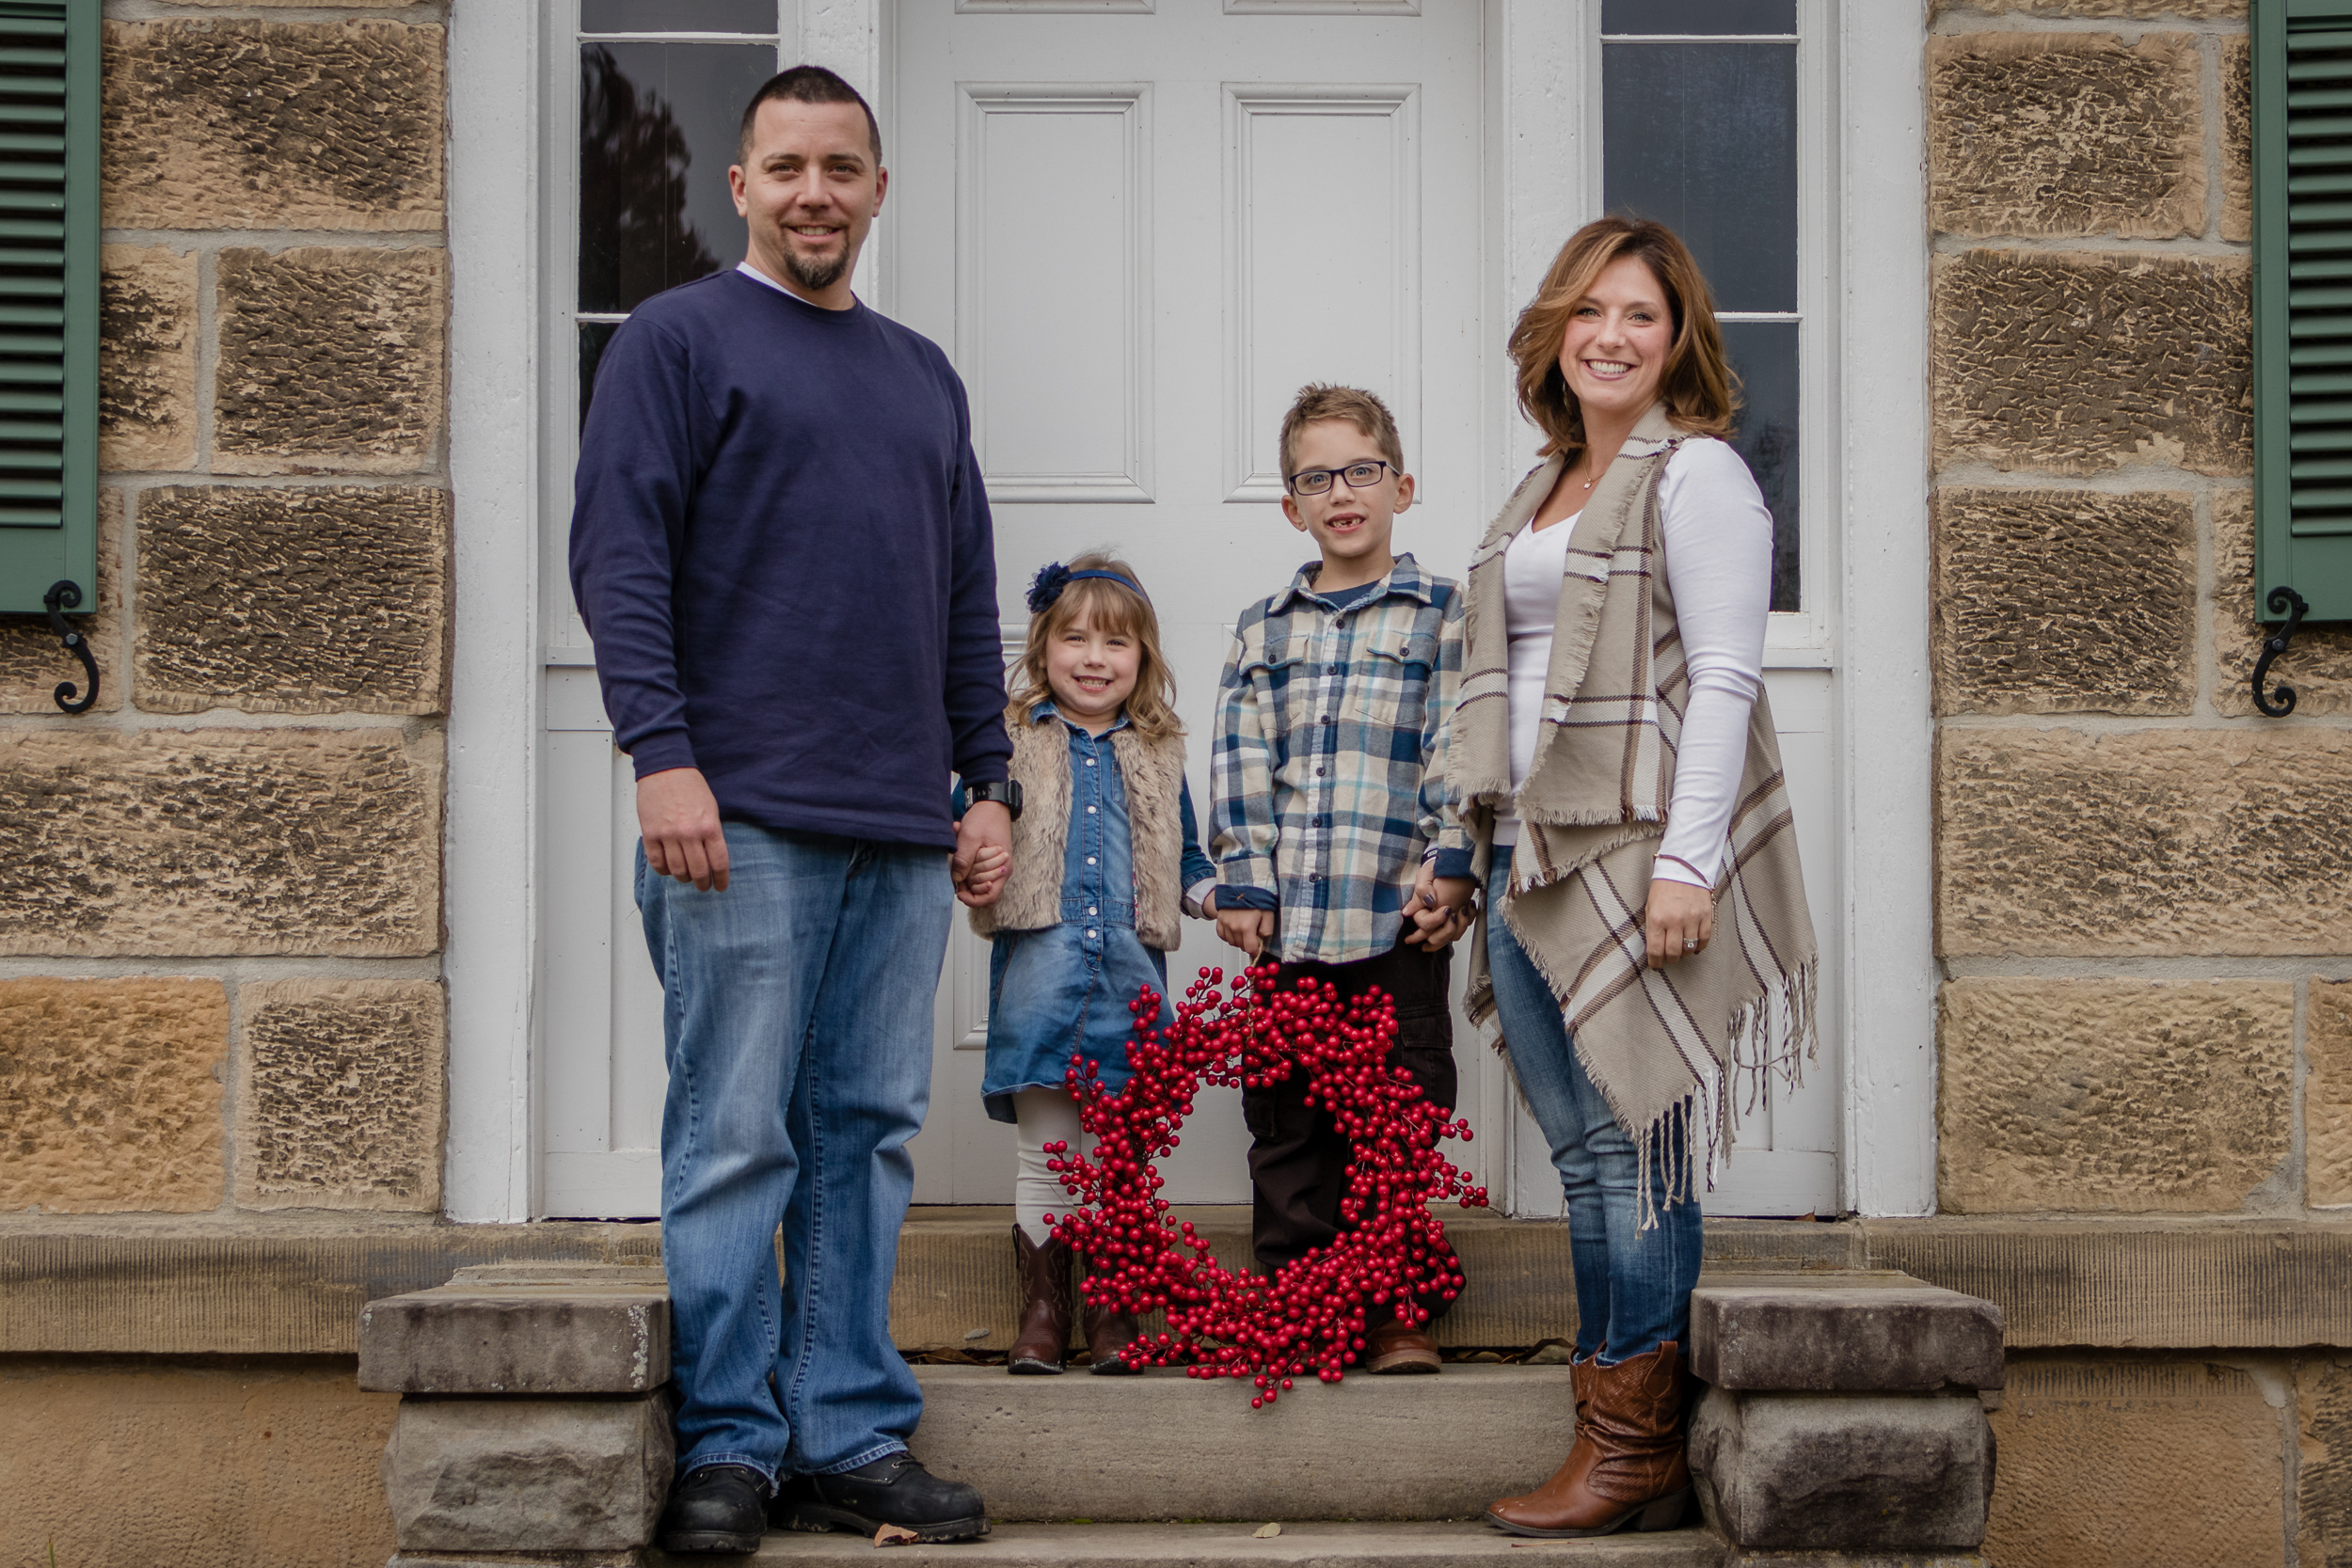 Interested in Family Photos? - View examples from our Christmas Card session with the Csata Family last Fall